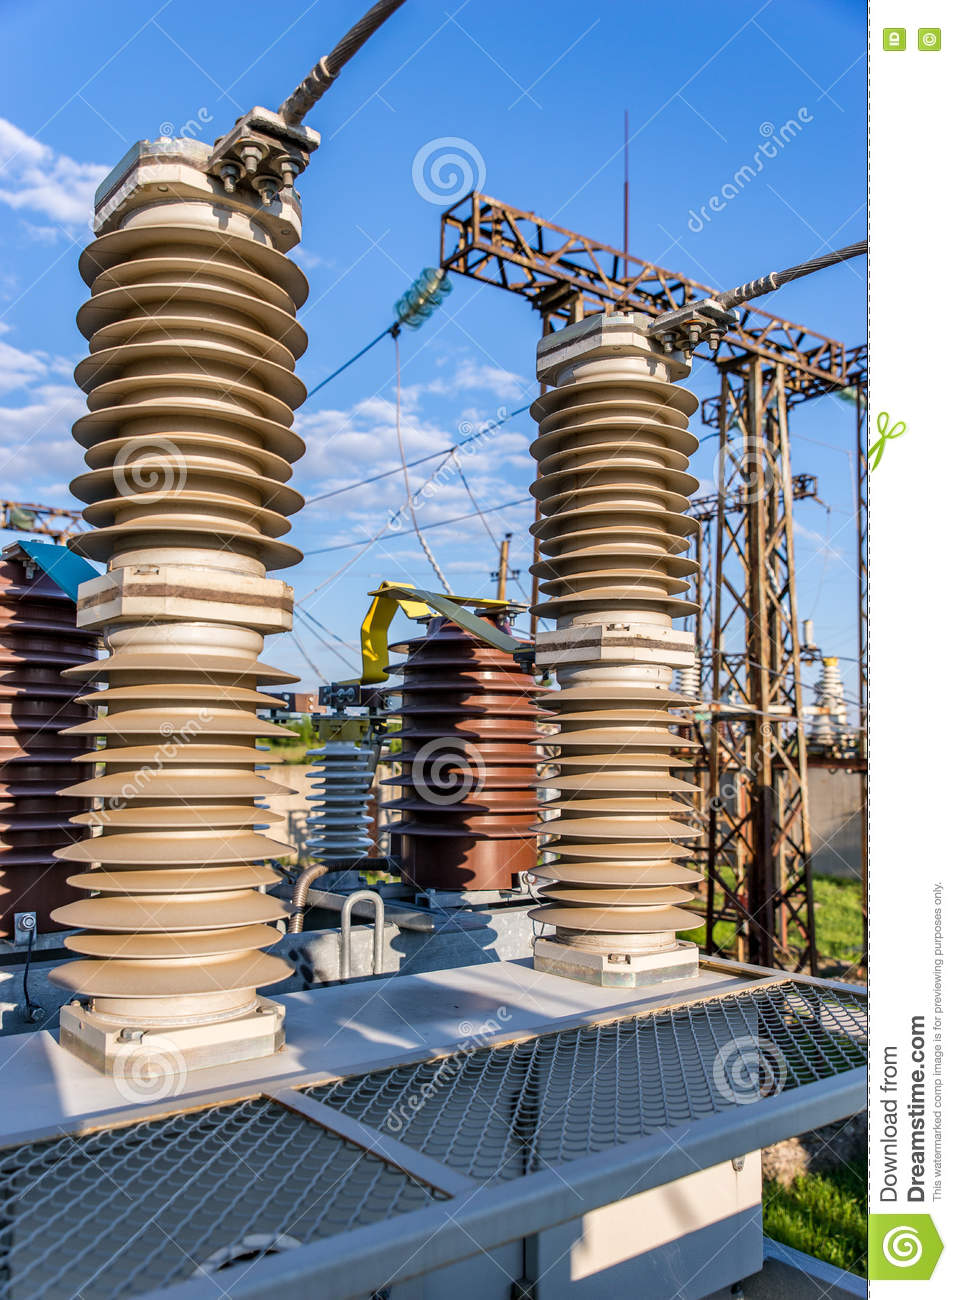 High Voltage Gear : High voltage electrical equipment royalty free stock photo